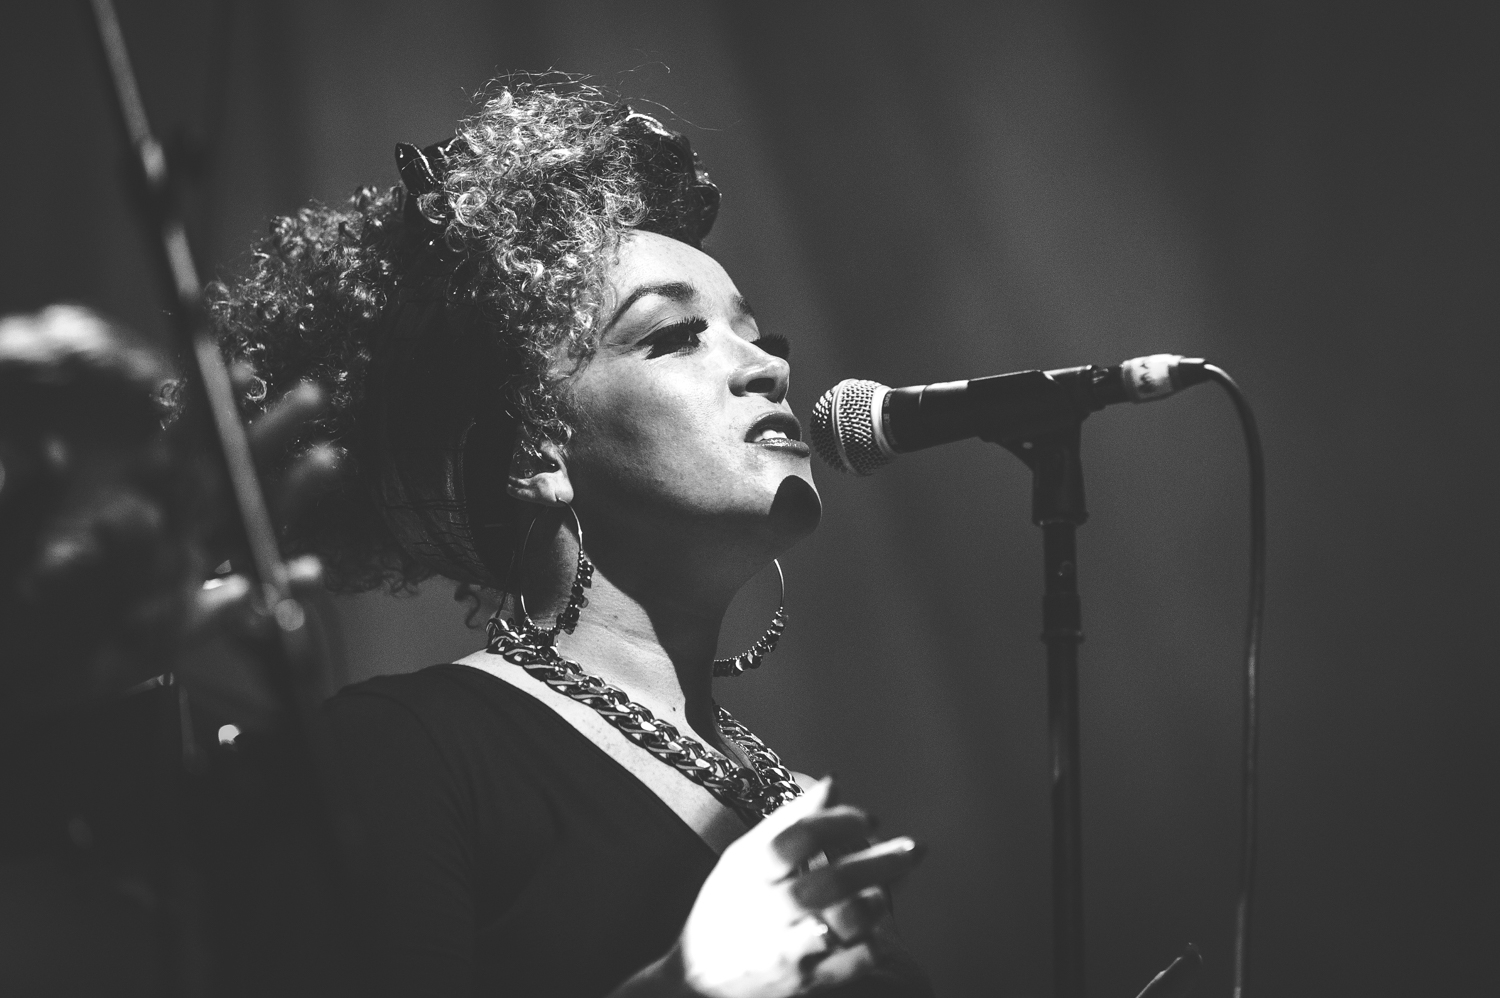 black and white music photography Archives - Rachael Emily Photography